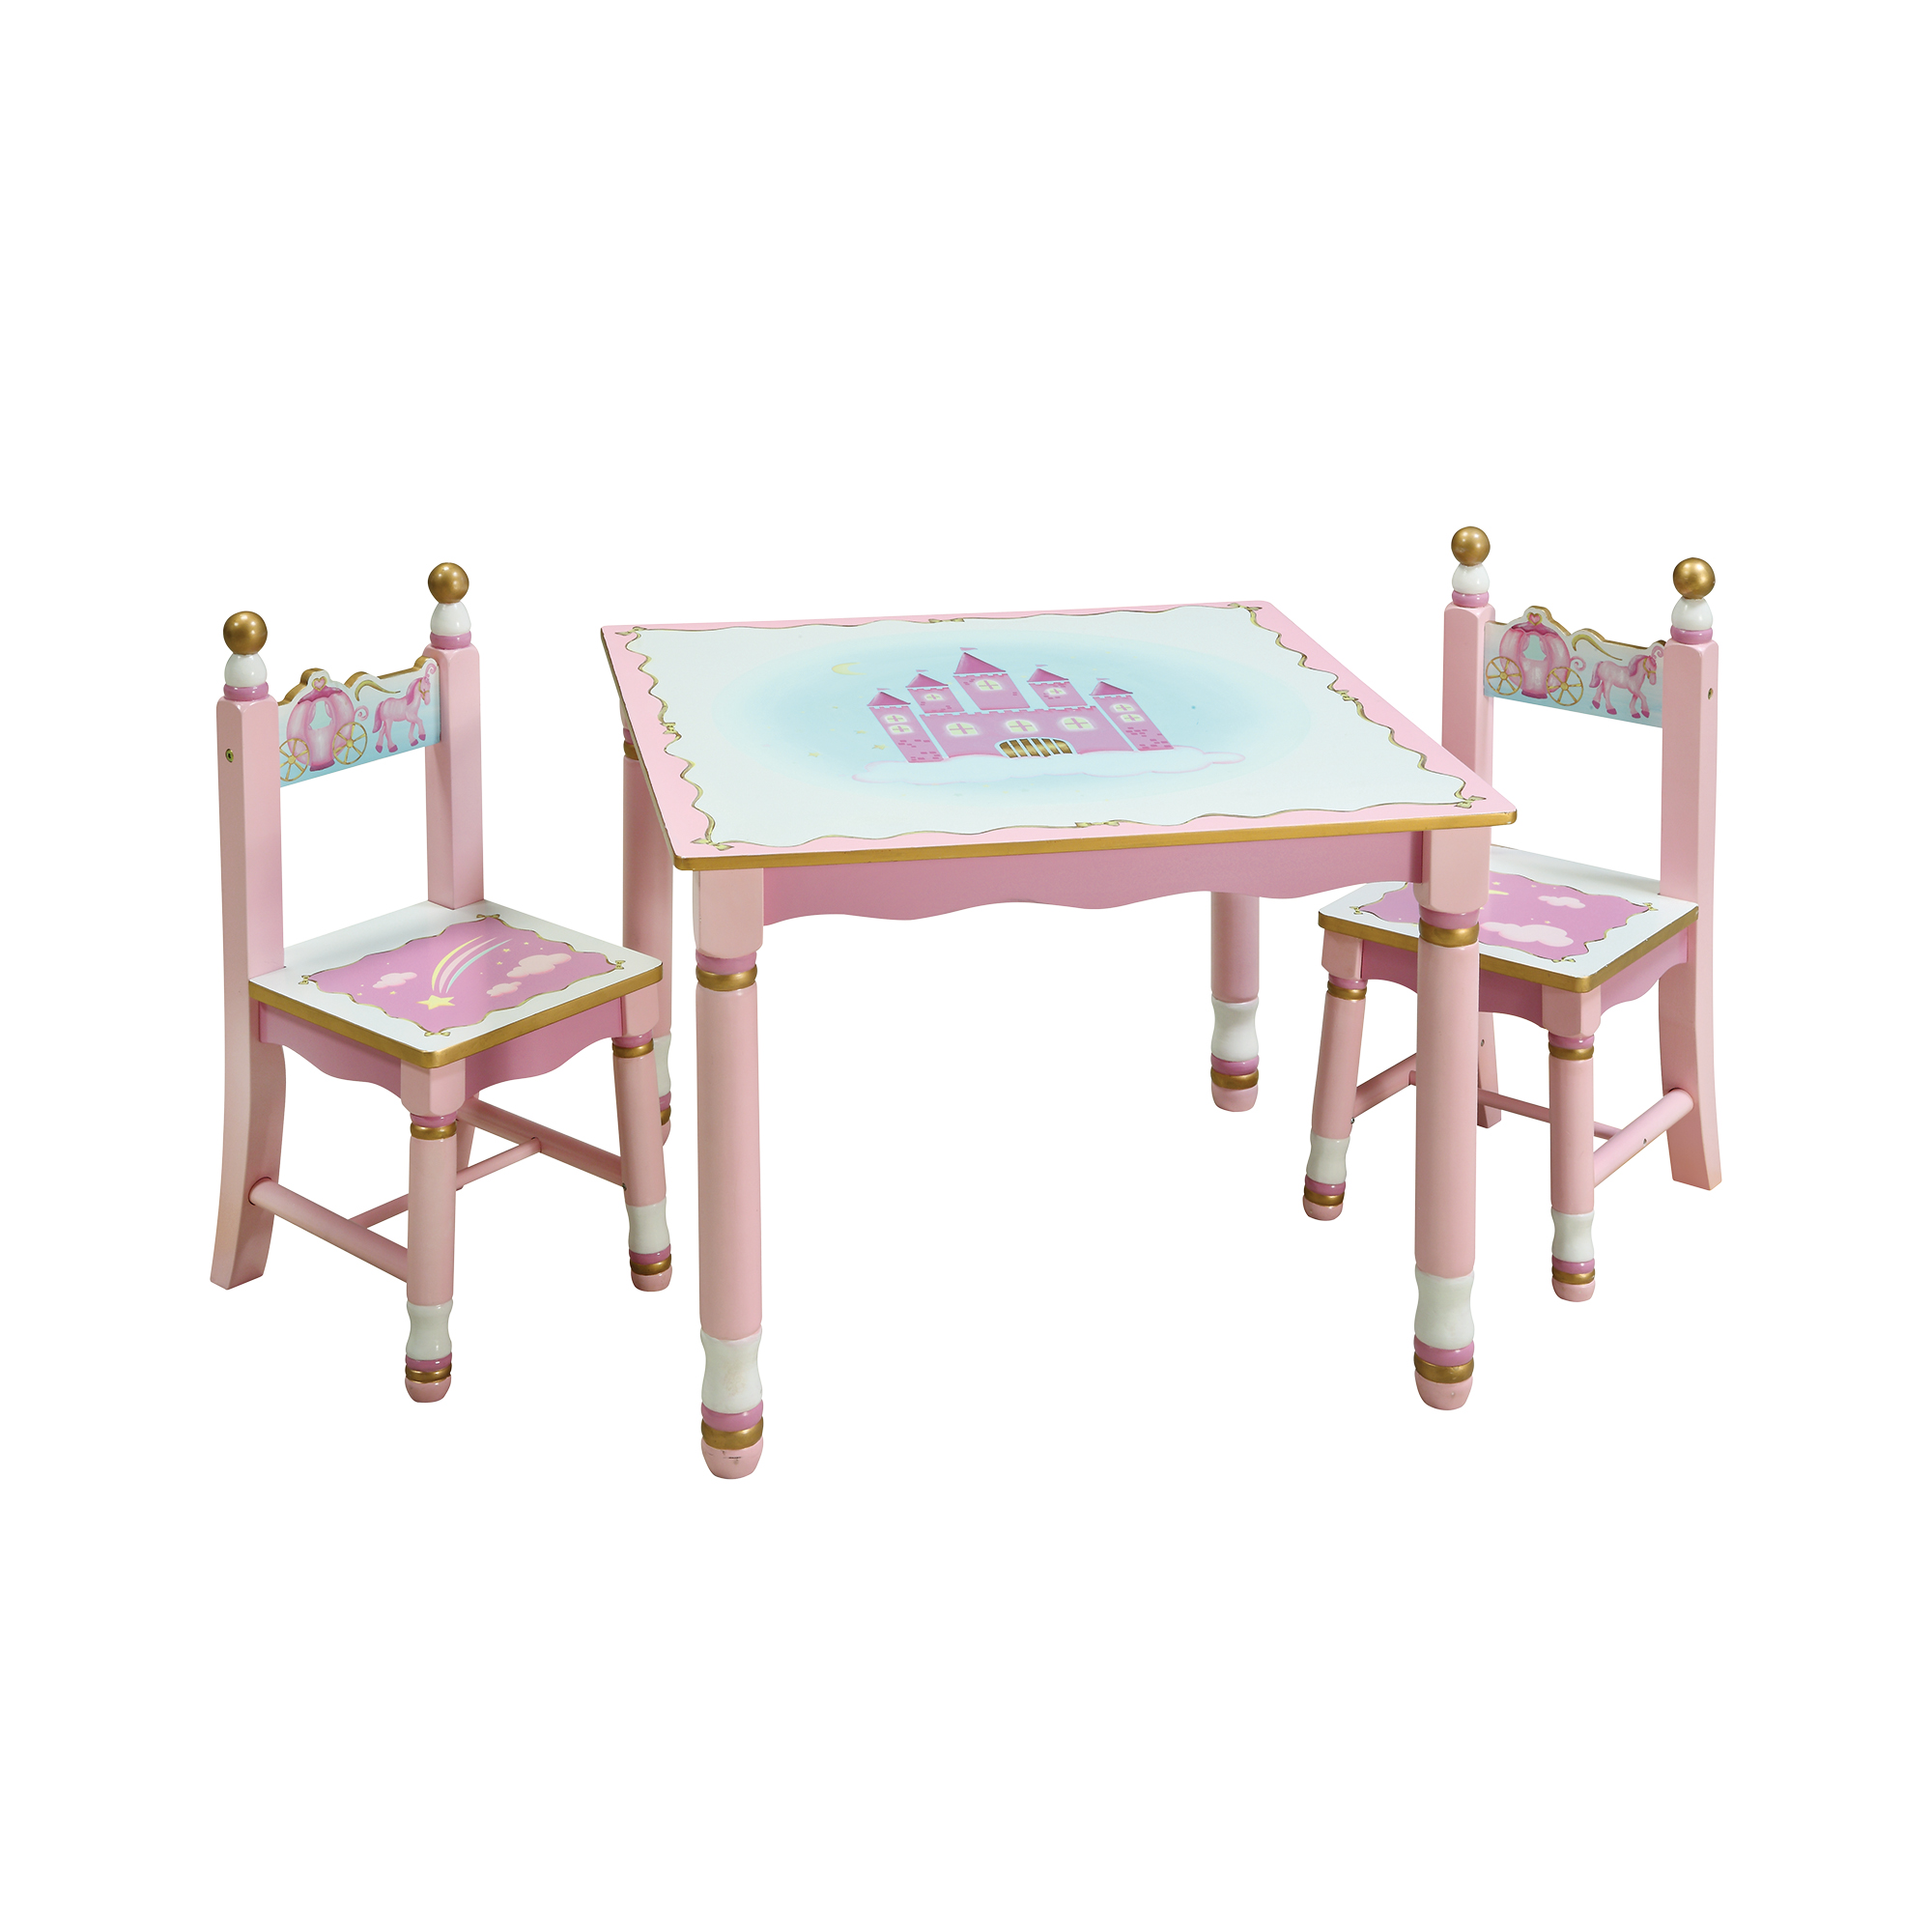 Princess Table and Chairs Set  sc 1 st  Walmart & Princess Table and Chairs Set - Walmart.com